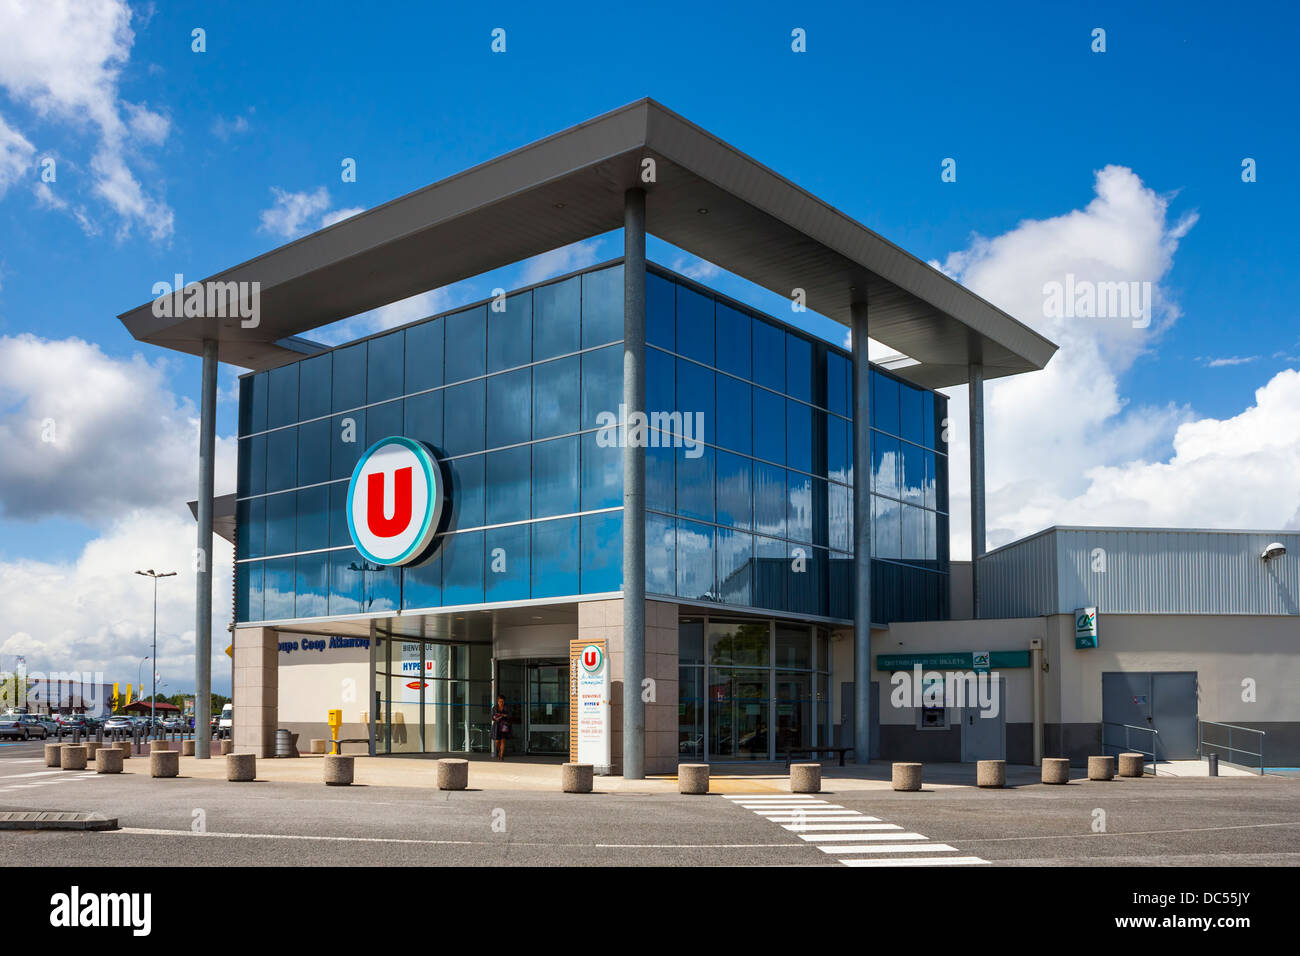 Hyper U, Saint-Junien, Limousin, France - Stock Image